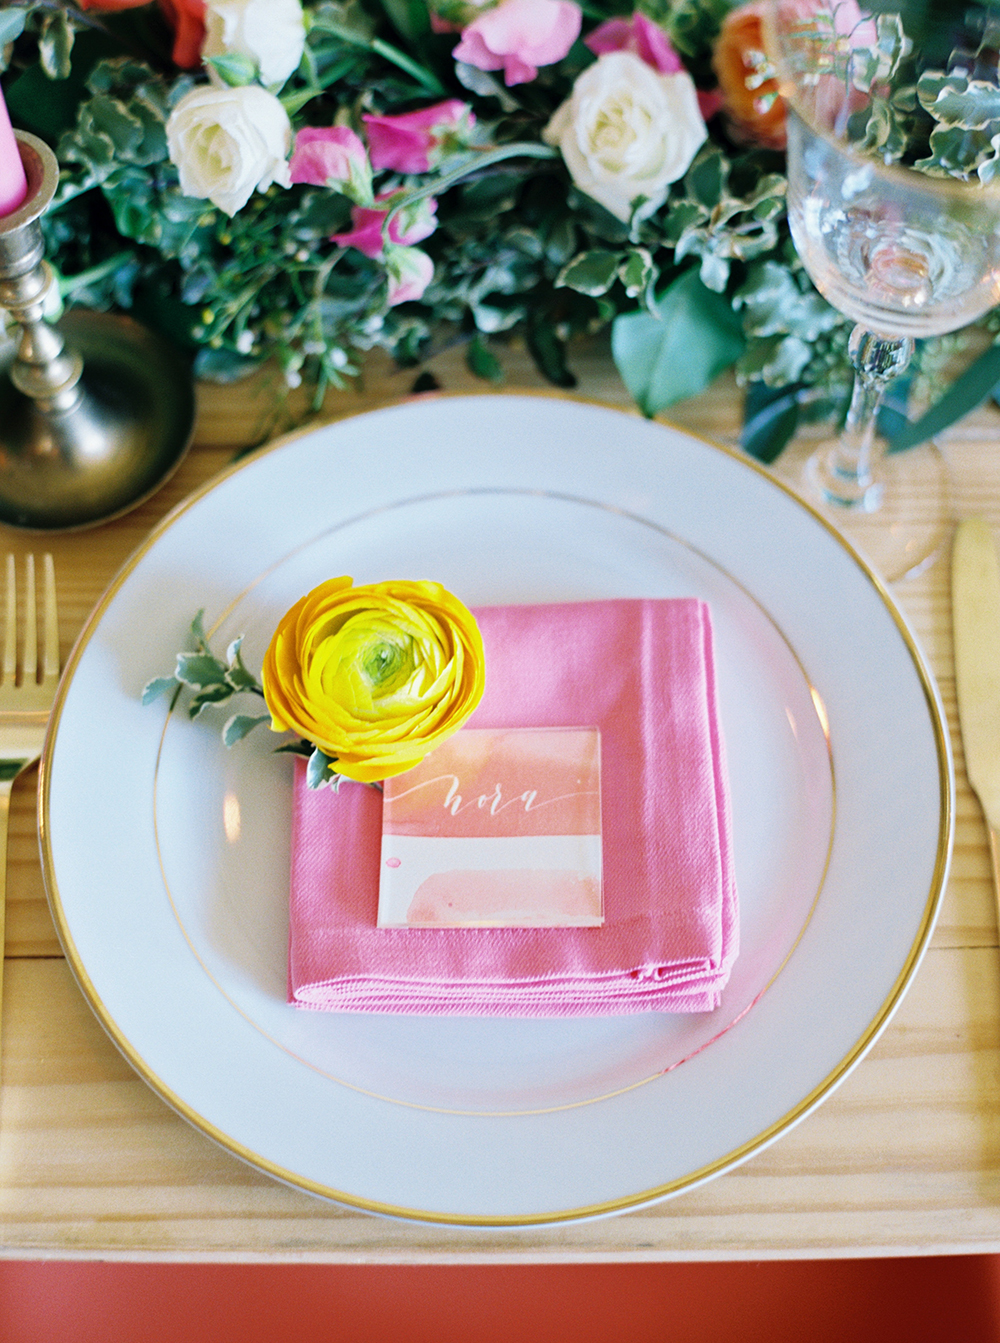 spring wedding tables - photo by Jessica Gold Photography http://ruffledblog.com/vibrant-summer-wedding-inspiration-with-fun-colors